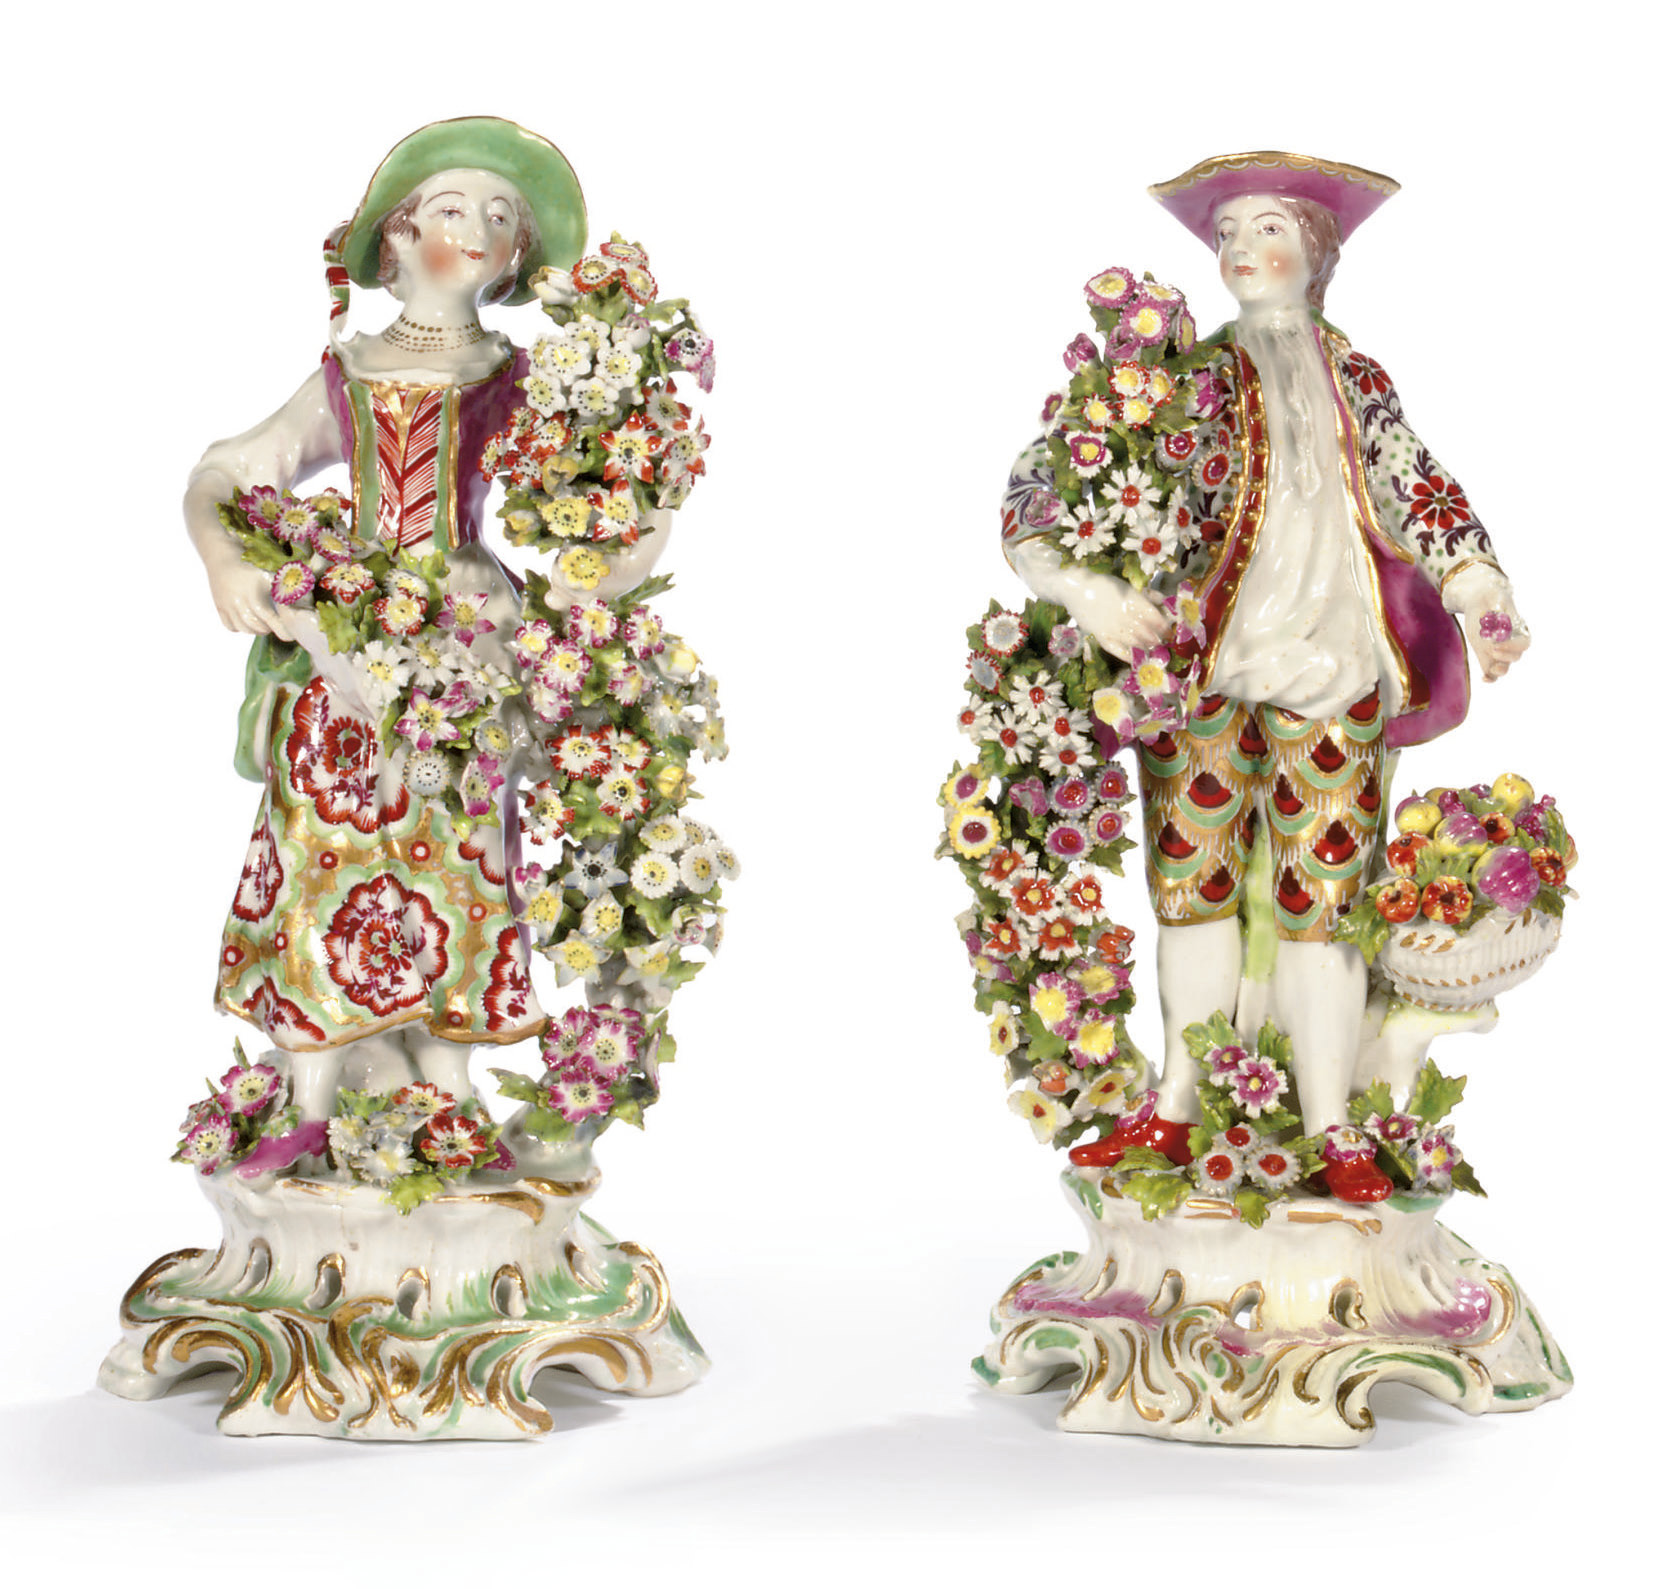 A PAIR OF BOW FIGURES OF A GALLANT AND COMPANION